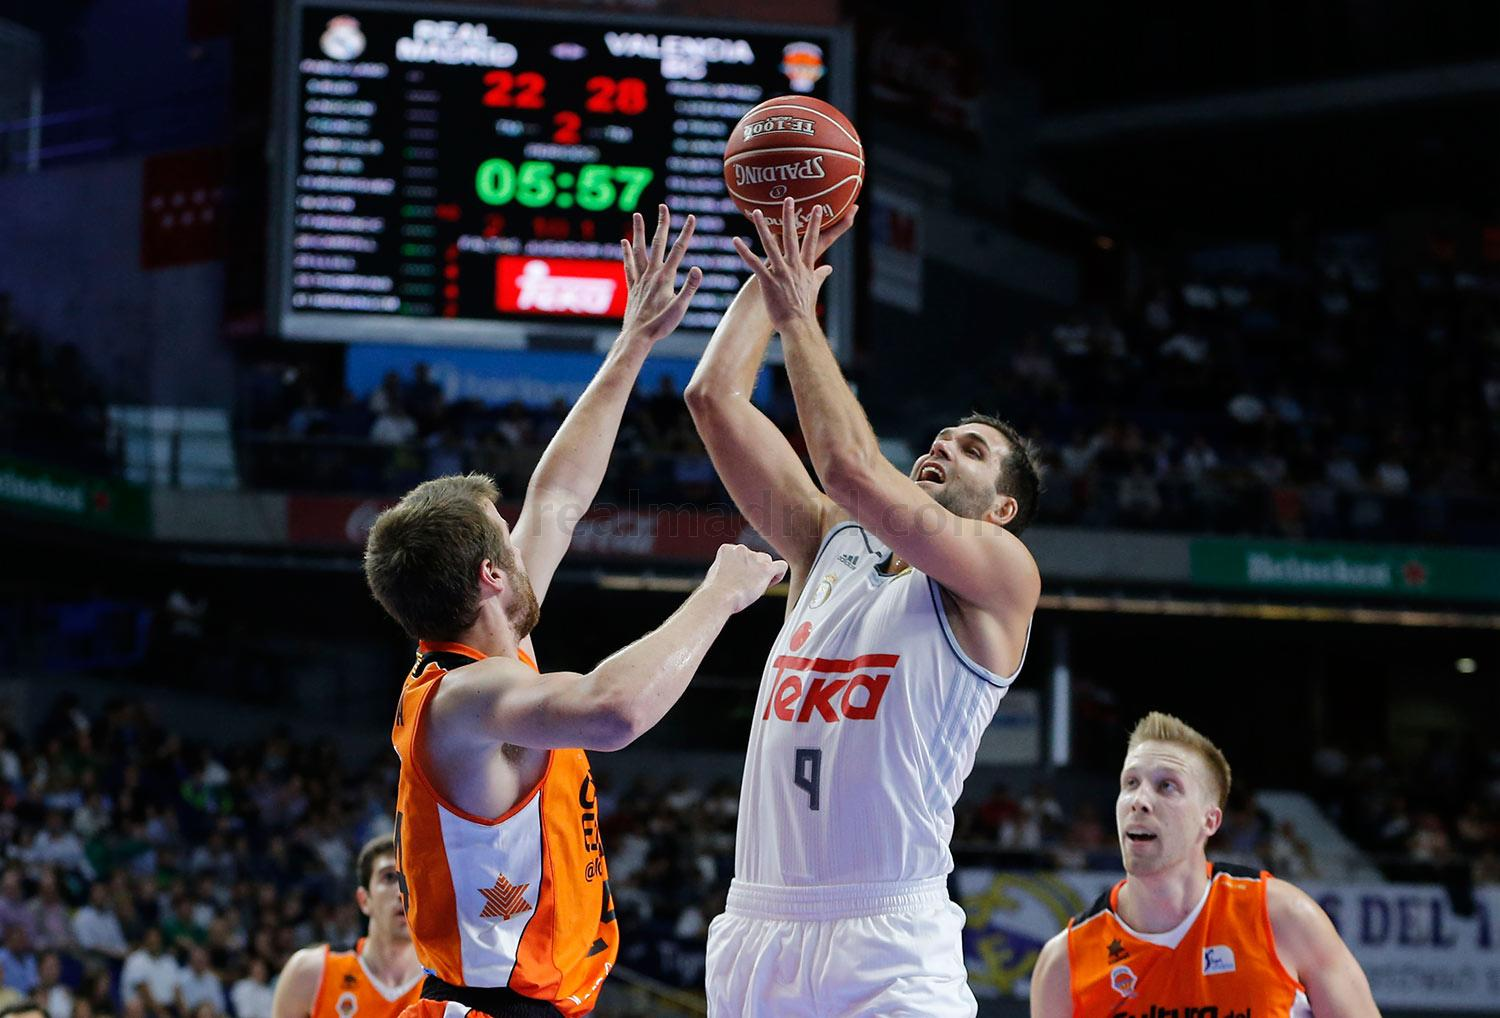 Real Madrid - Real Madrid - Valencia Basket - 11-10-2015